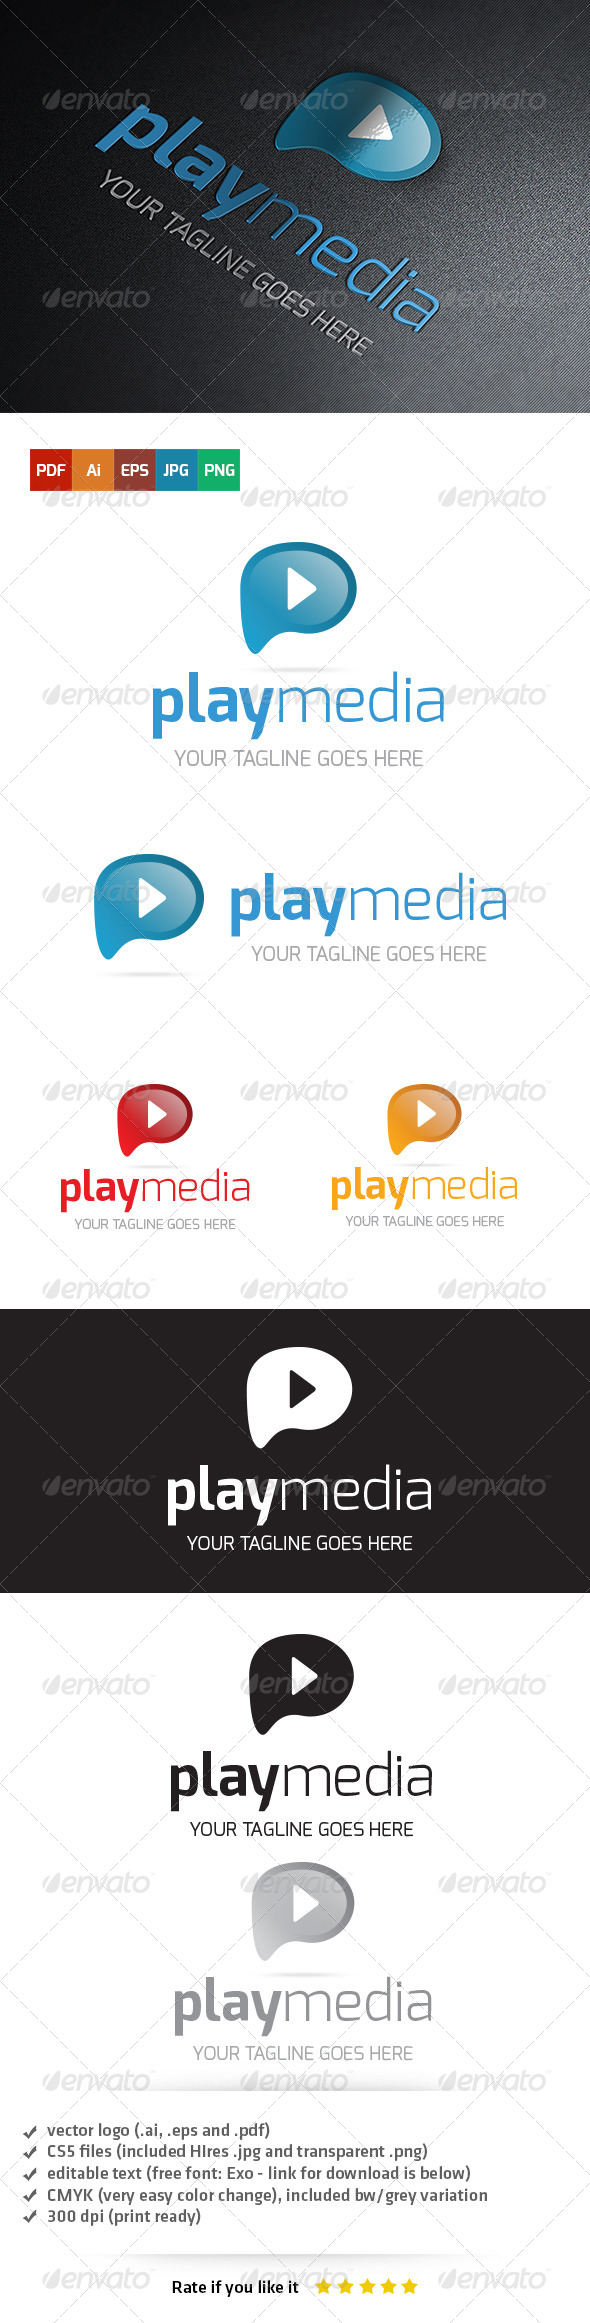 GraphicRiver Play Media Logo Template 5901990